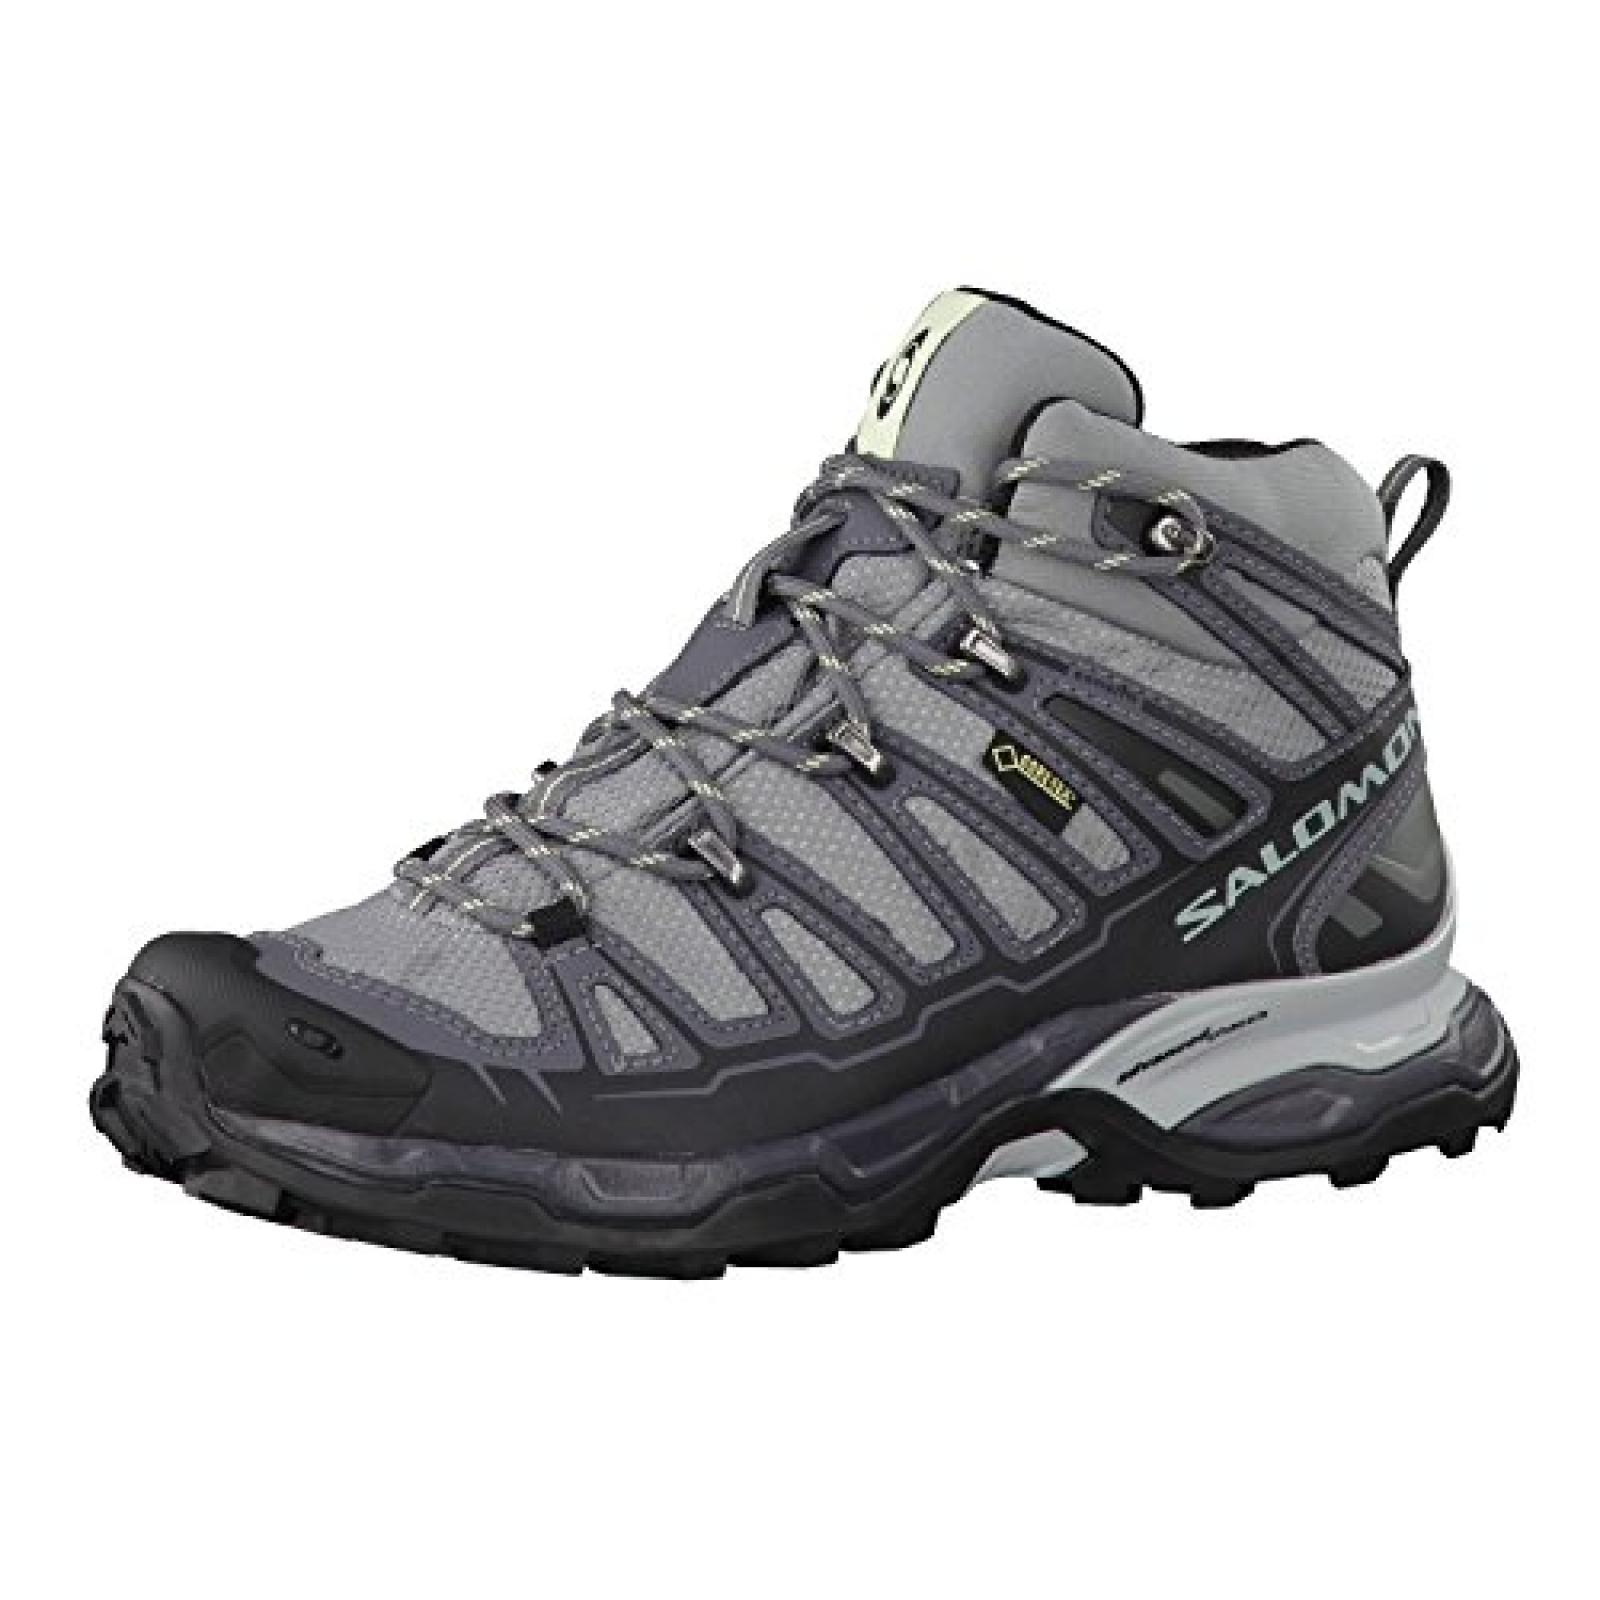 Salomon Damen Hiking Schuhe X Ultra Mid GTX W